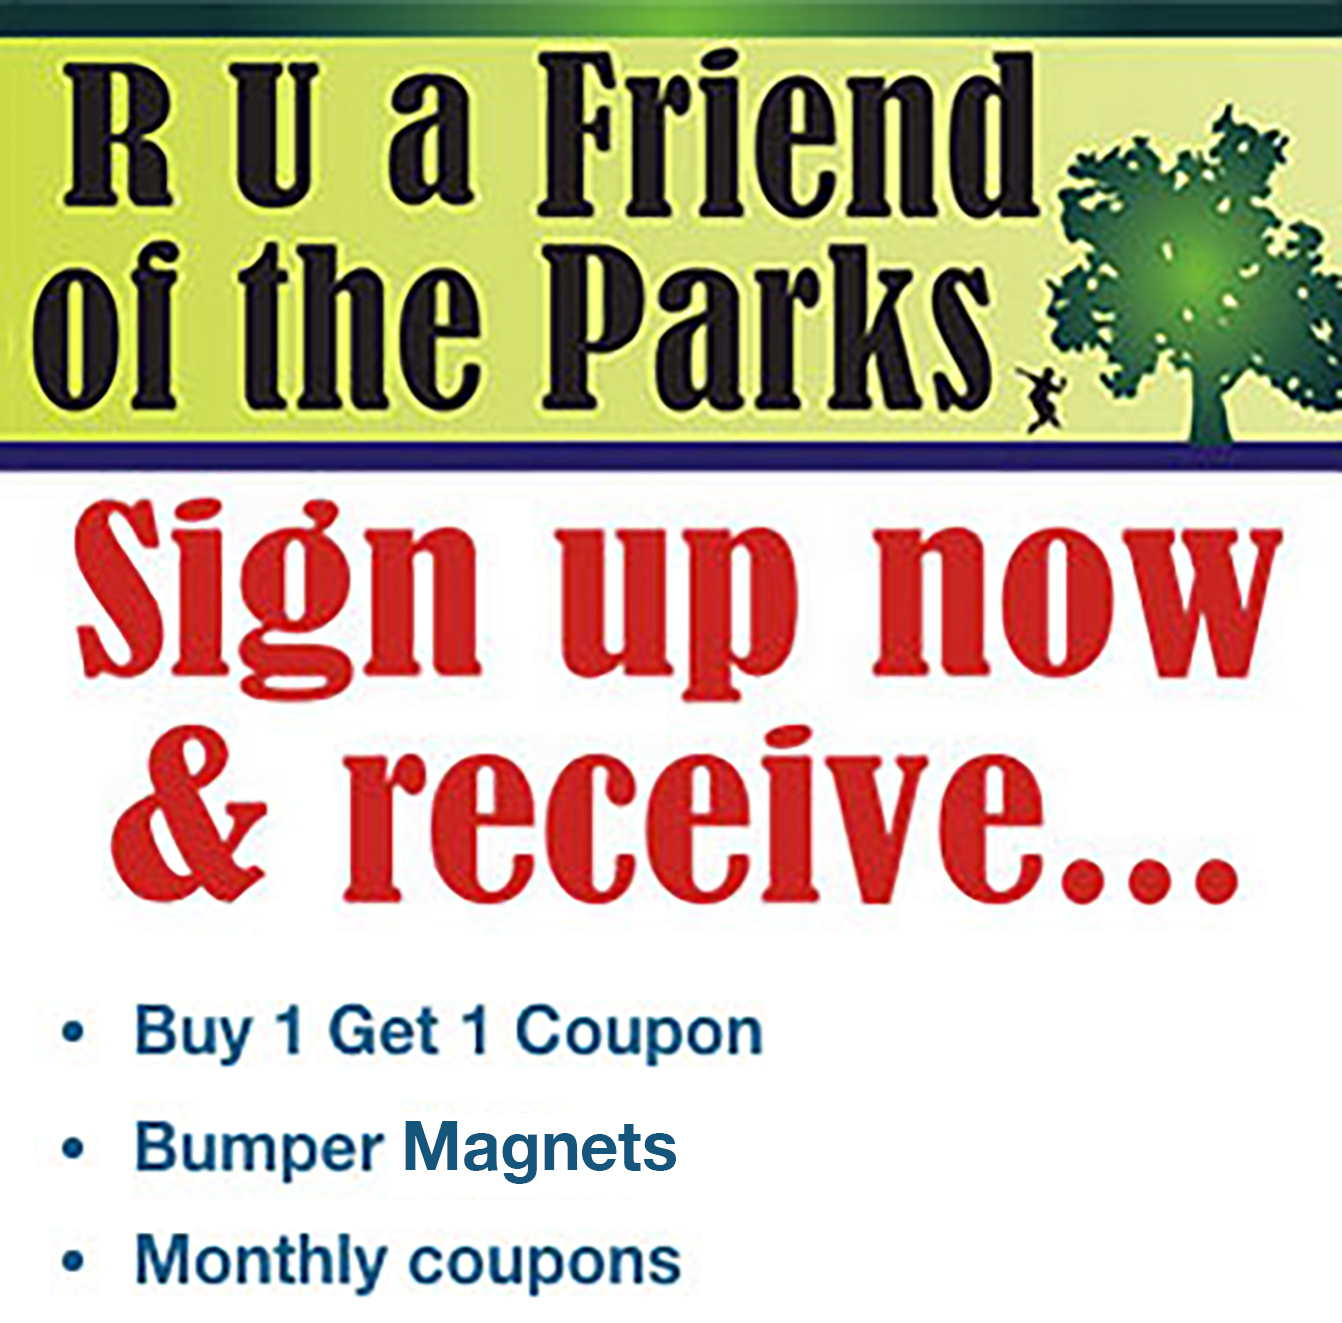 R U a Friend of the Parks